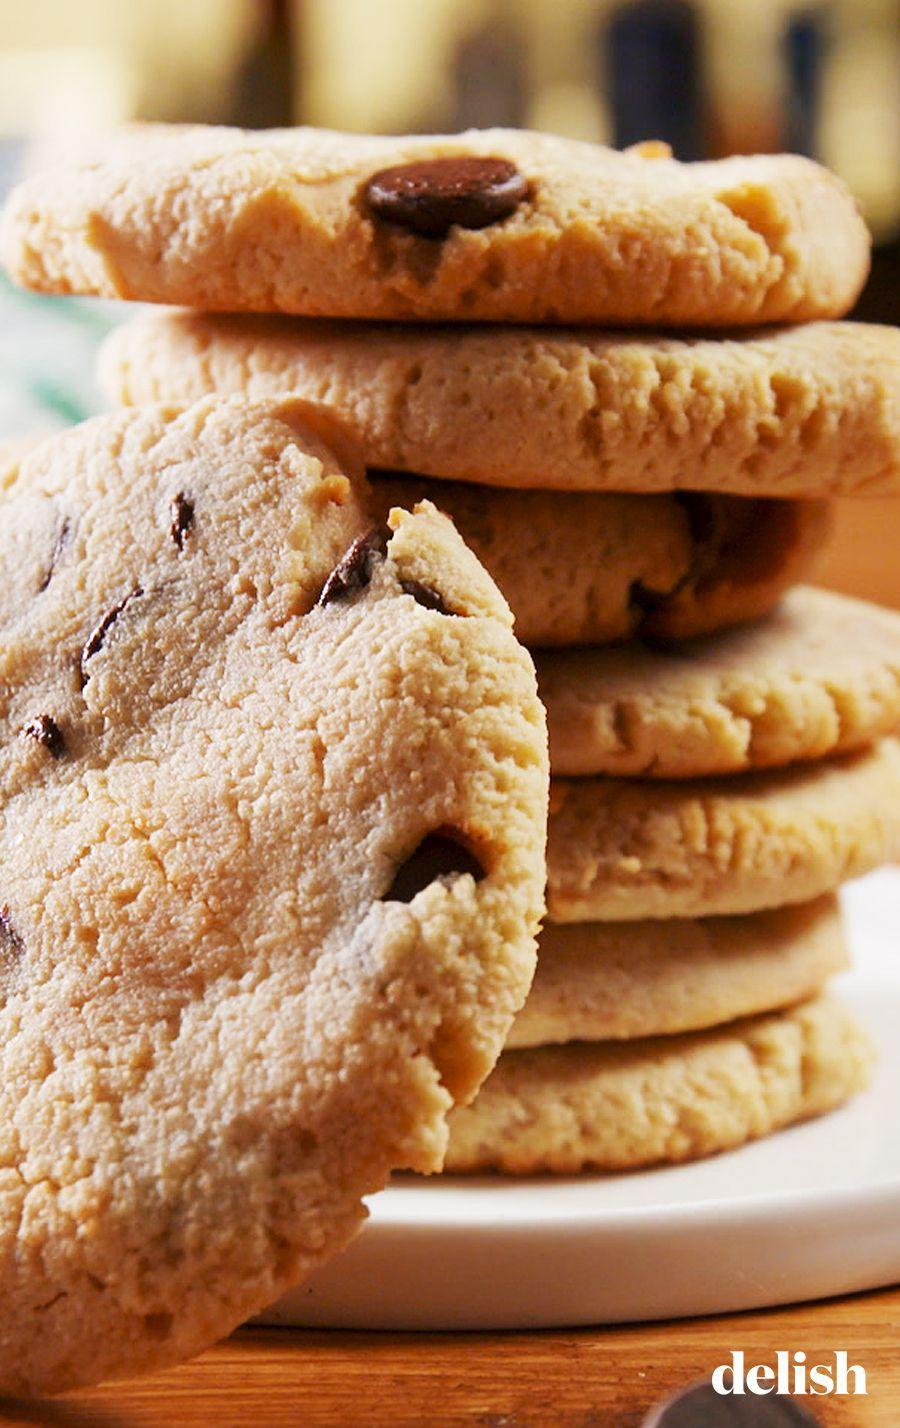 """<p>The toughest part about keto-friendly recipes is figuring out low-carb, sugar-free desserts. This chocolate chip cookie recipe will save you.</p><p>Get the recipe from <a href=""""https://www.delish.com/cooking/recipe-ideas/a25752891/keto-chocolate-chip-cookie-recipe/"""" rel=""""nofollow noopener"""" target=""""_blank"""" data-ylk=""""slk:Delish"""" class=""""link rapid-noclick-resp"""">Delish</a>.</p>"""